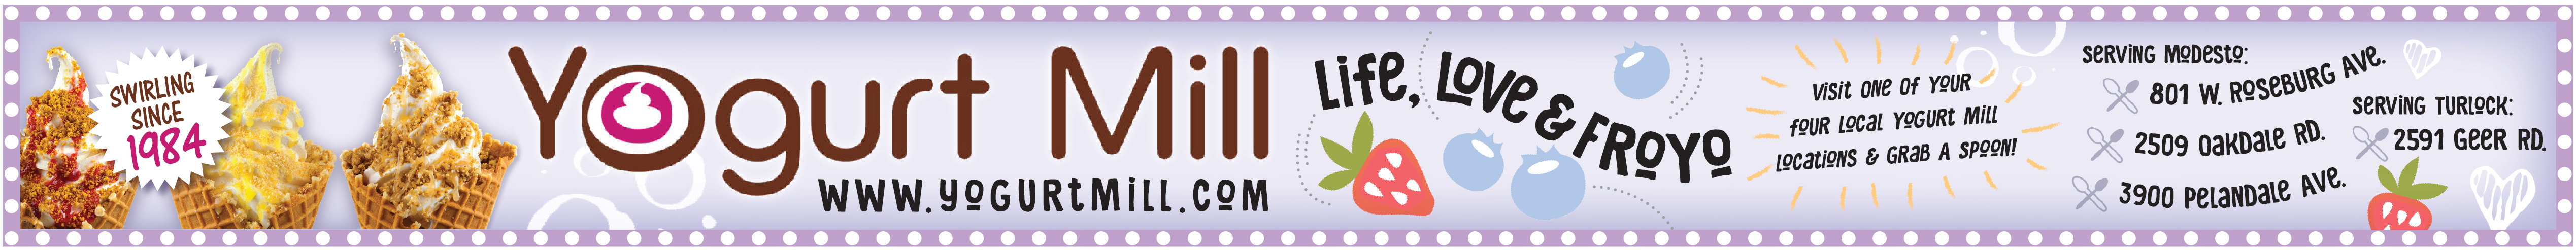 Yogurt Mill - banner